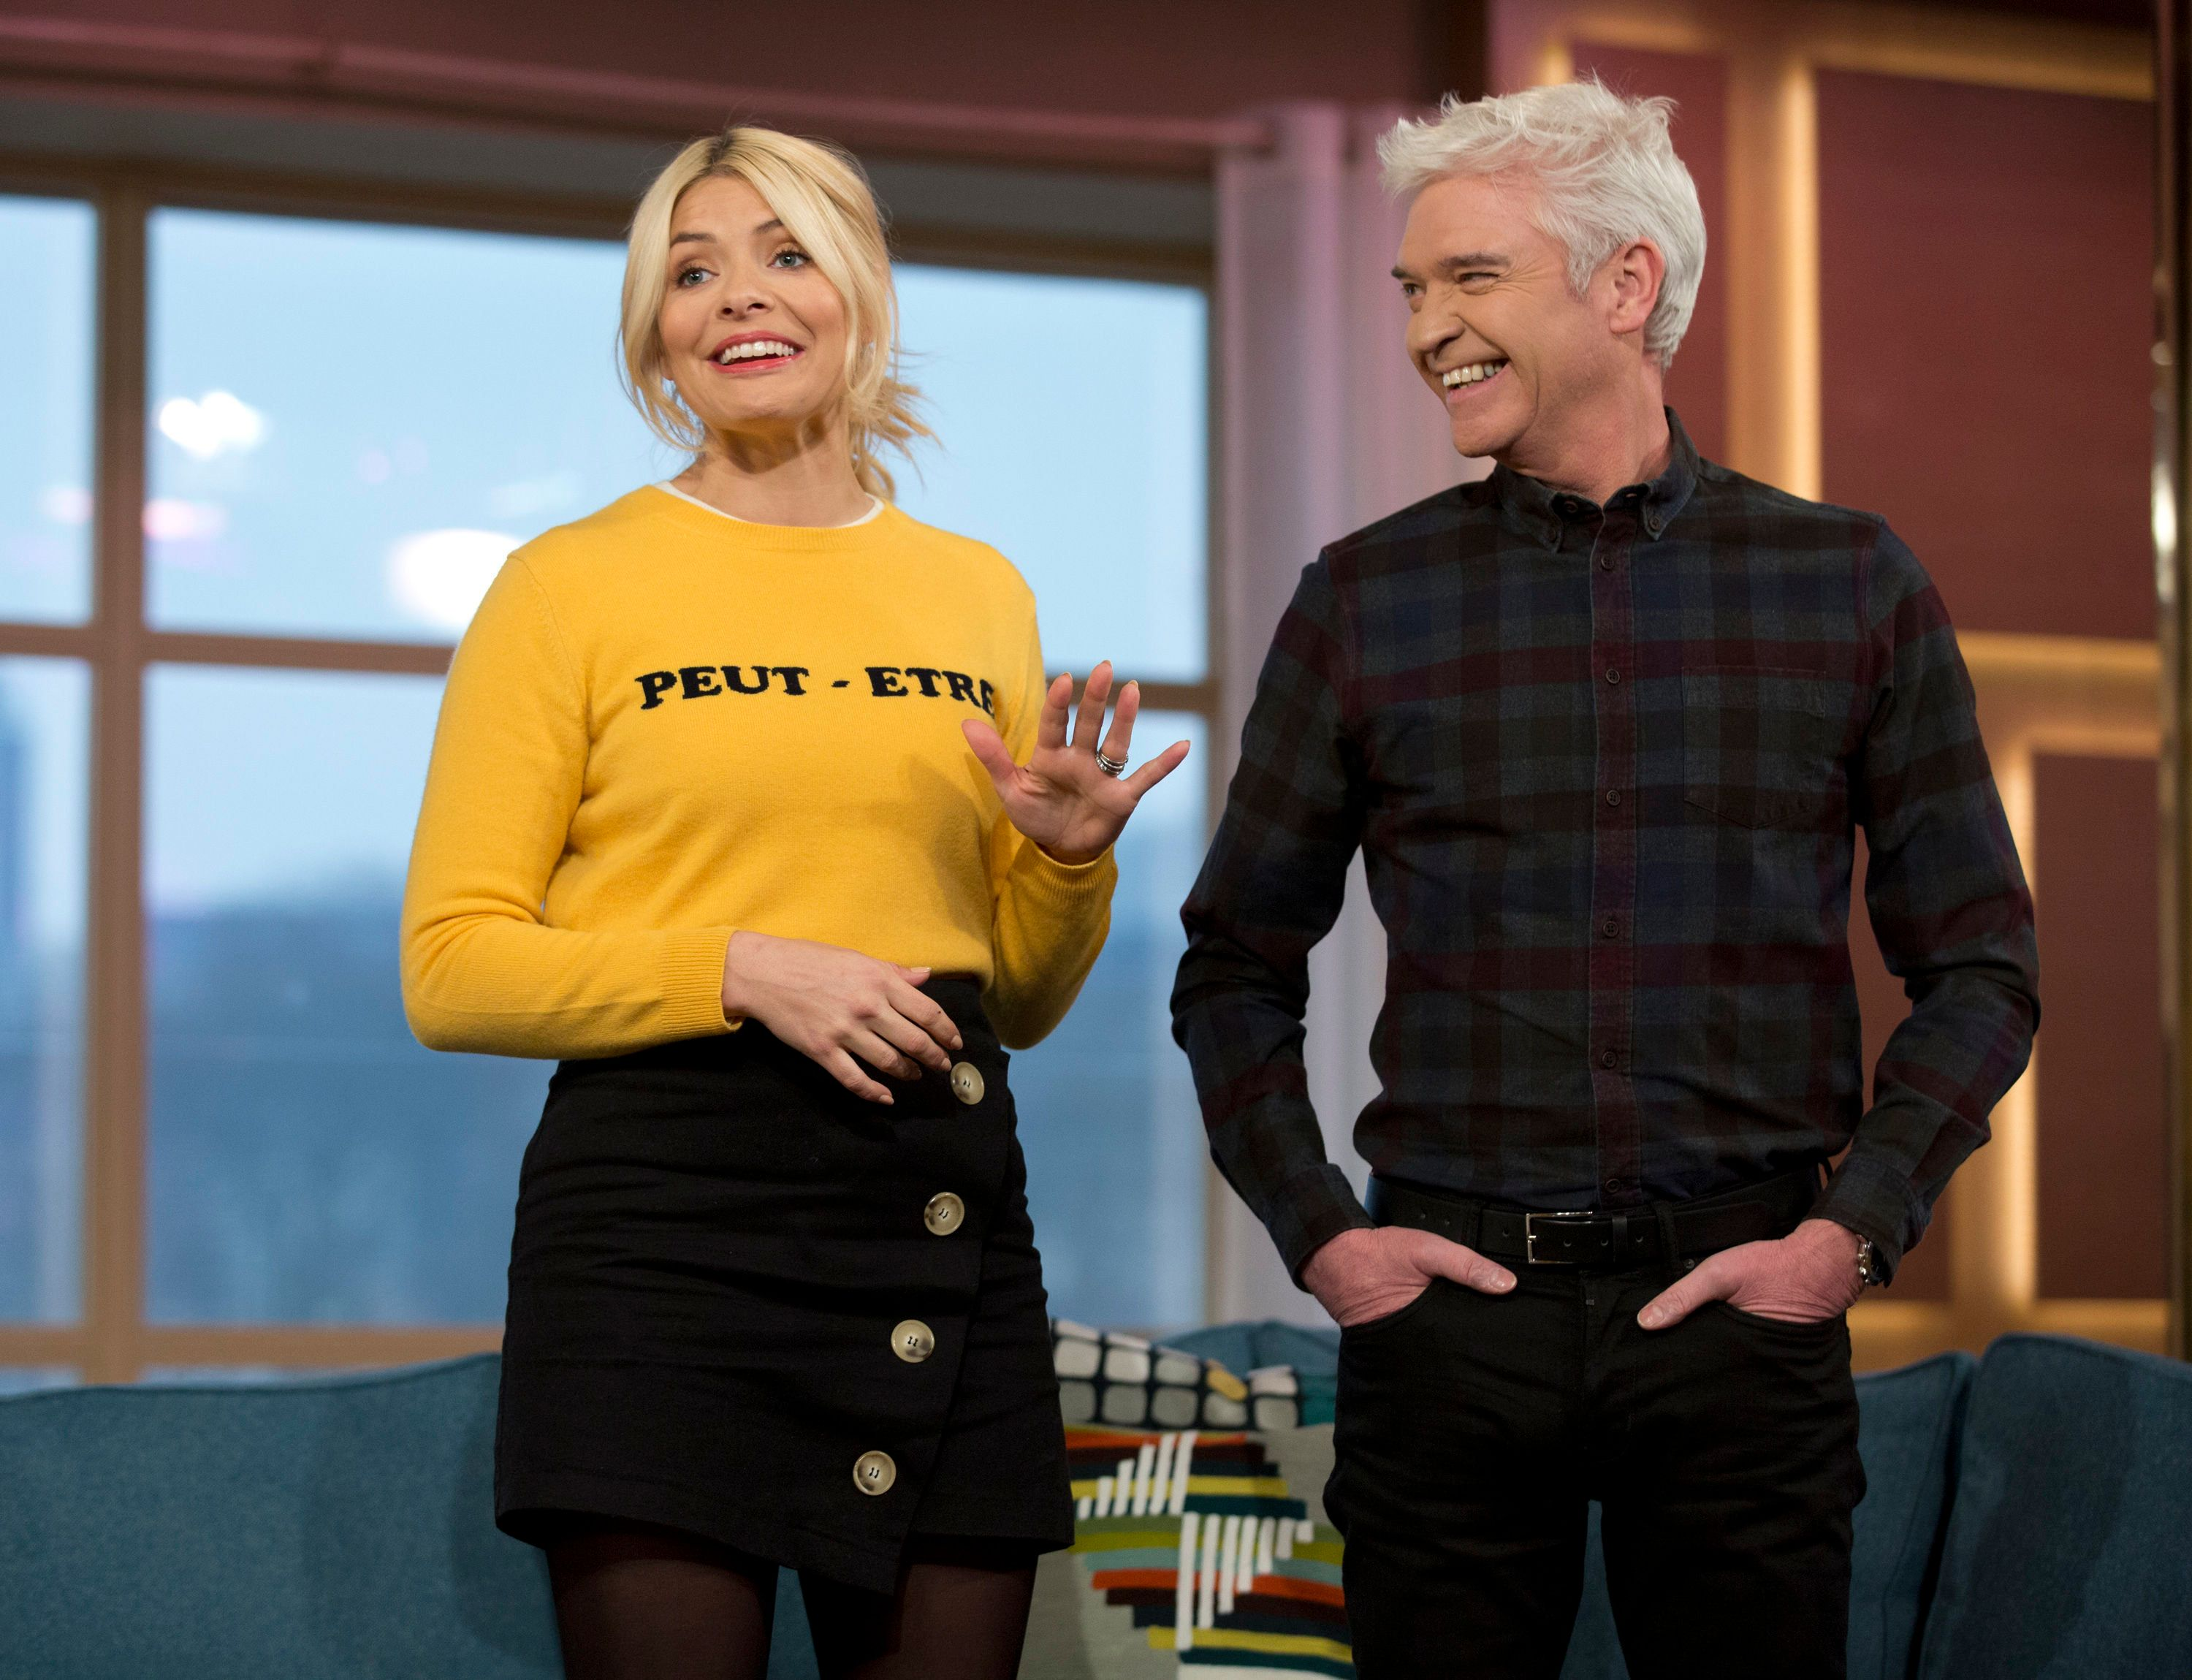 Holly Willoughby And Phillip Schofield To Appear In 'Coronation